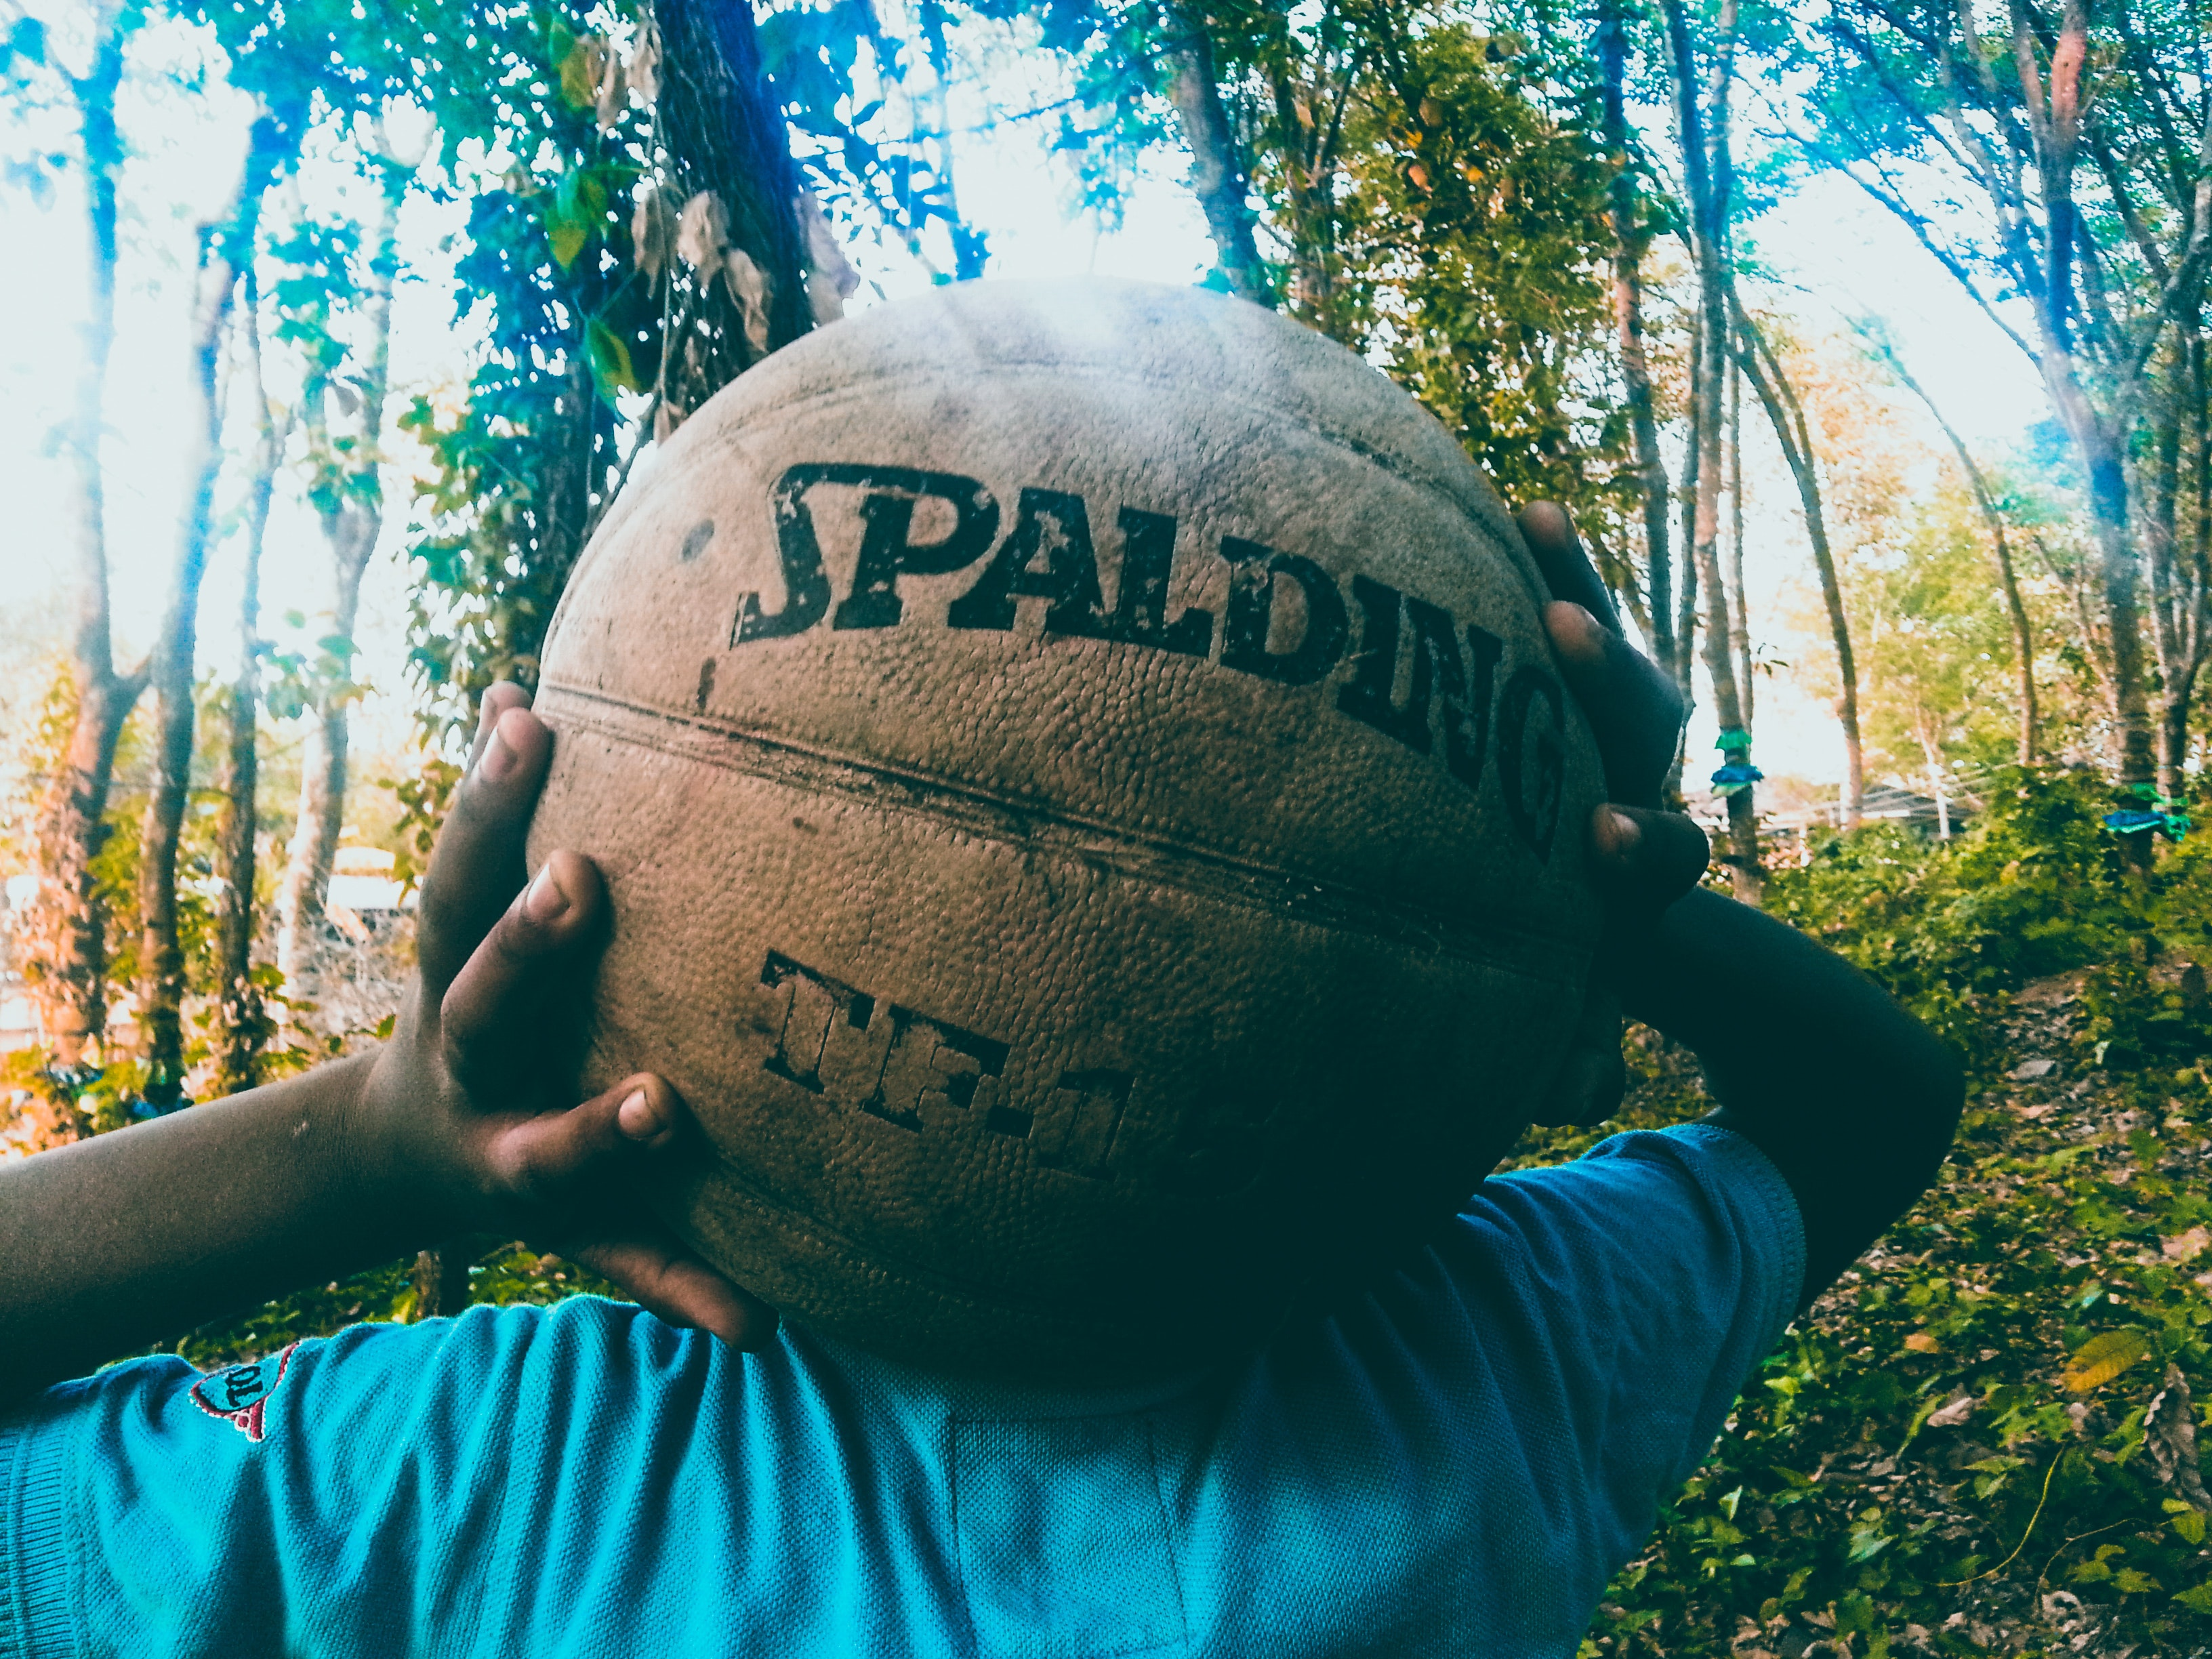 Person holding brown spalding basketball photo